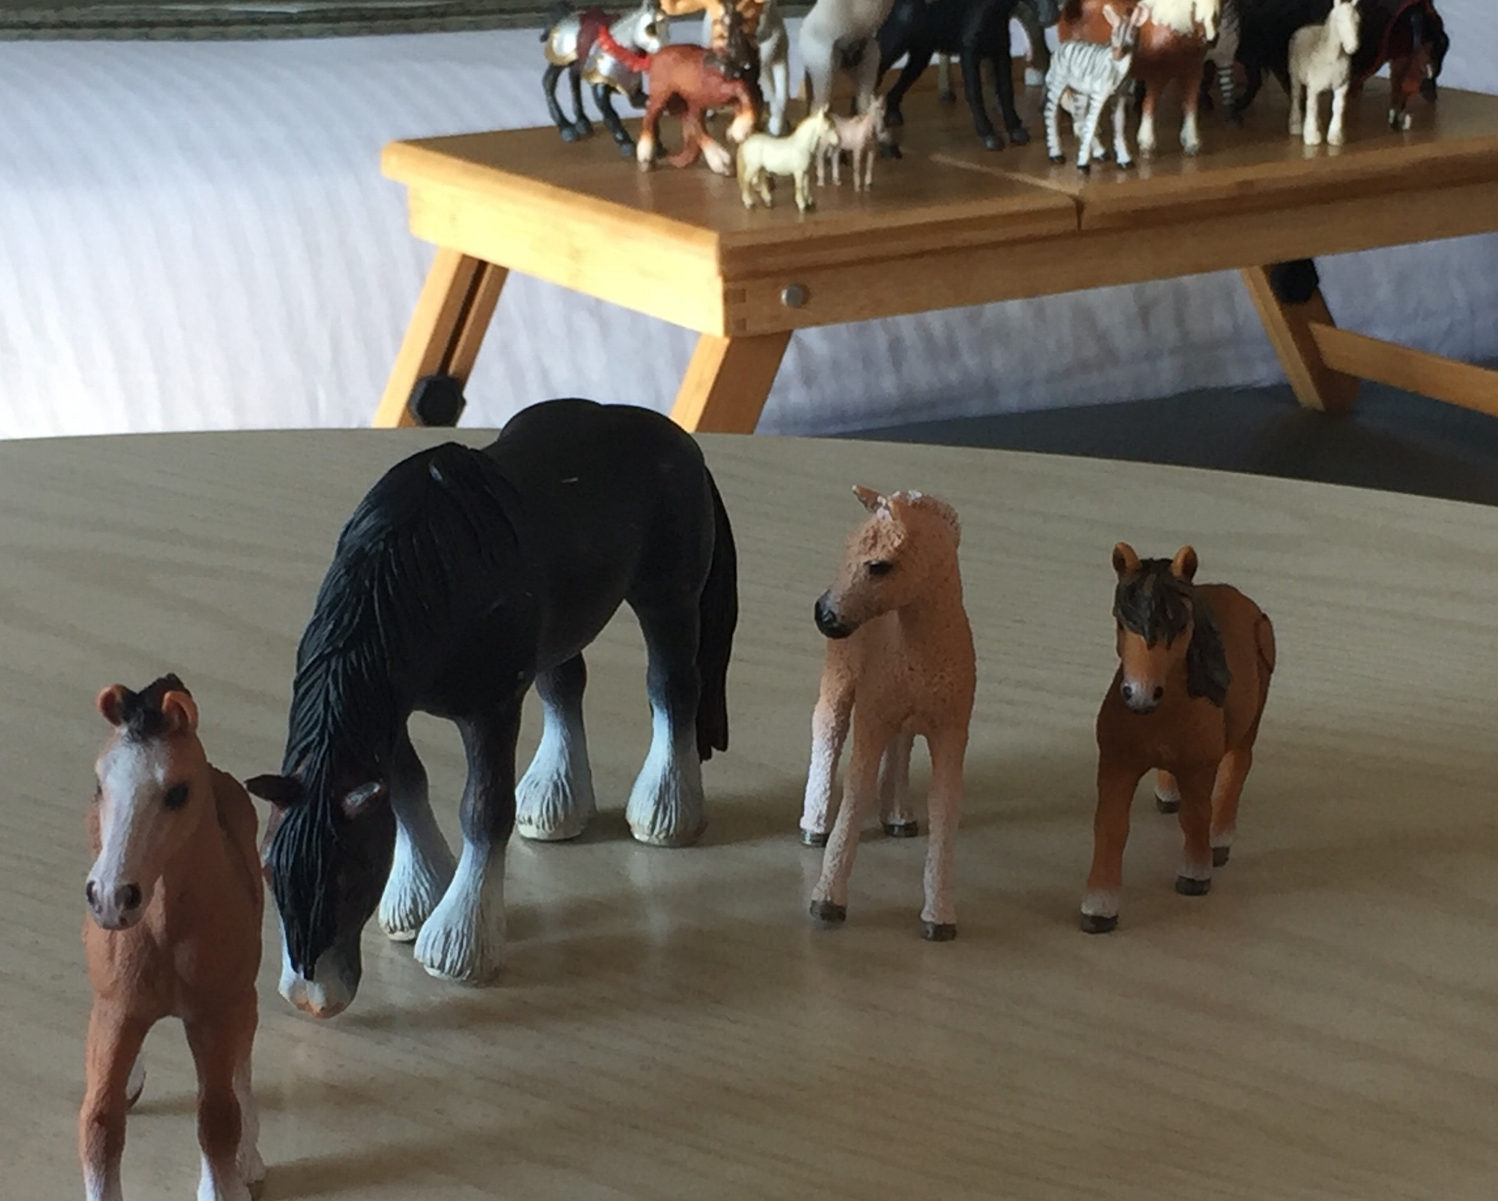 A family constellation using toy horses: older sister in front, mom behind, younger sister and brother on the right.